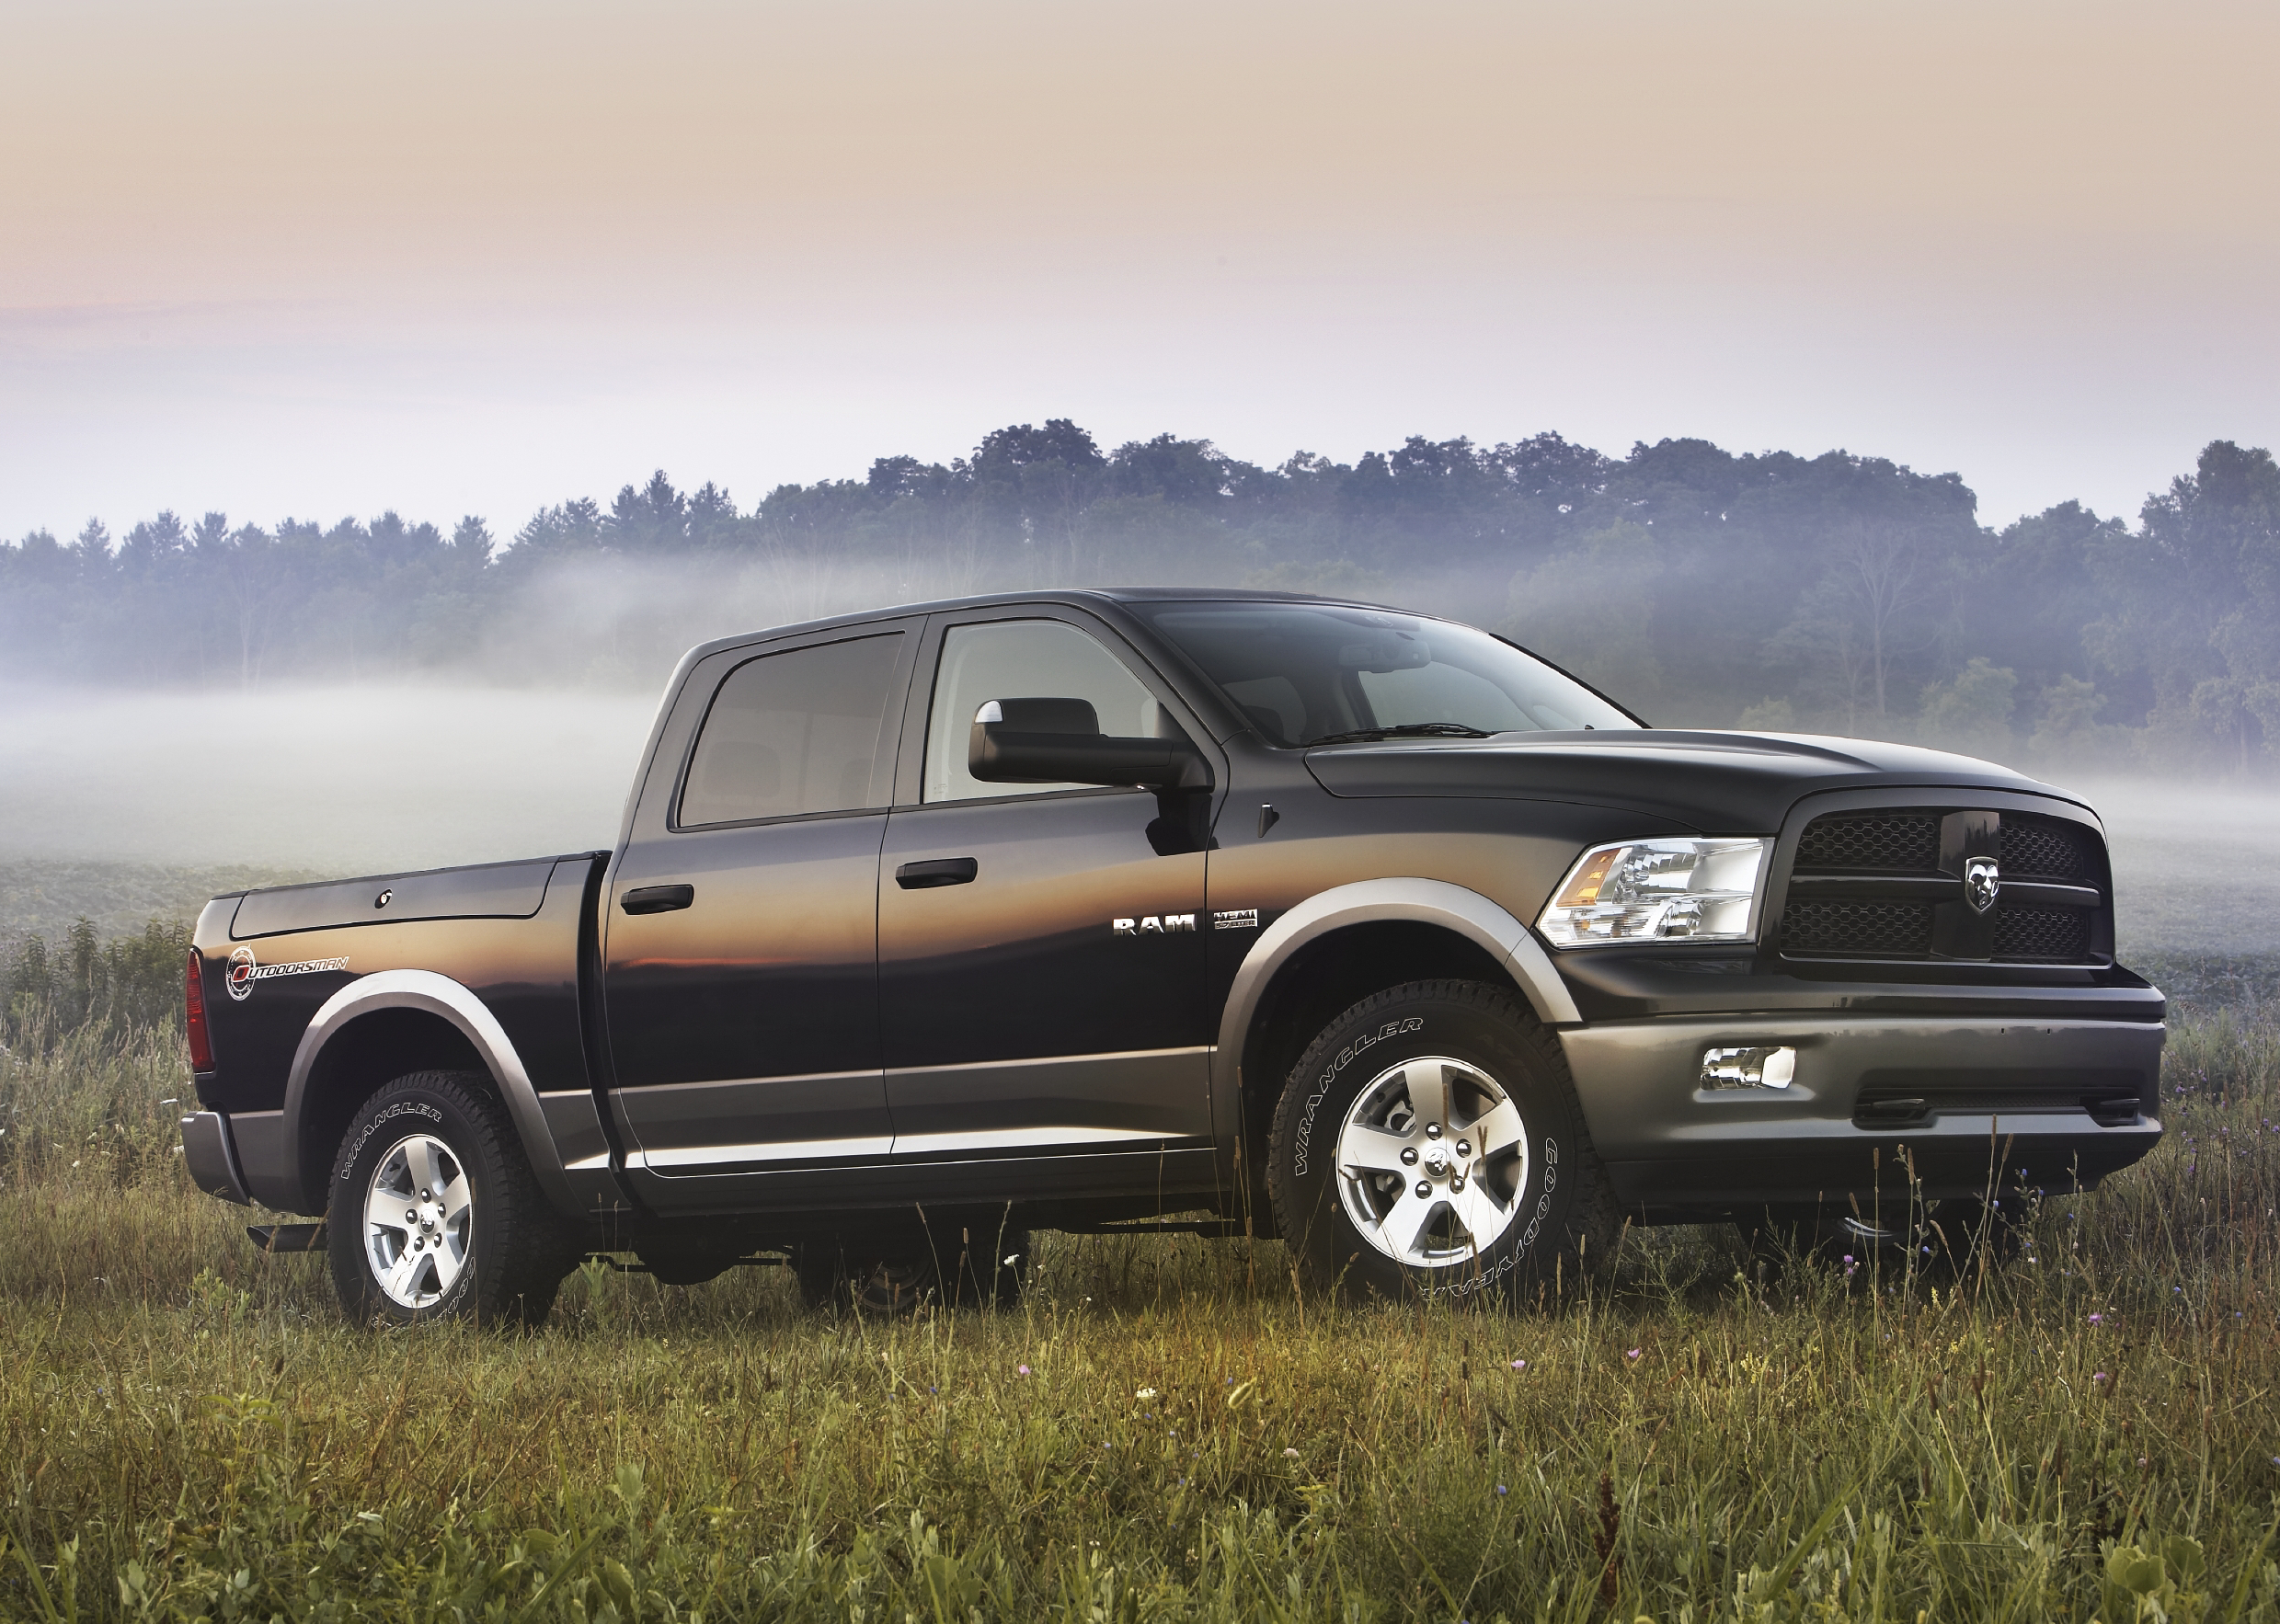 New vehicle review -- 2011 Dodge Ram 1500 Outdoorsman Crew Cab 4X4